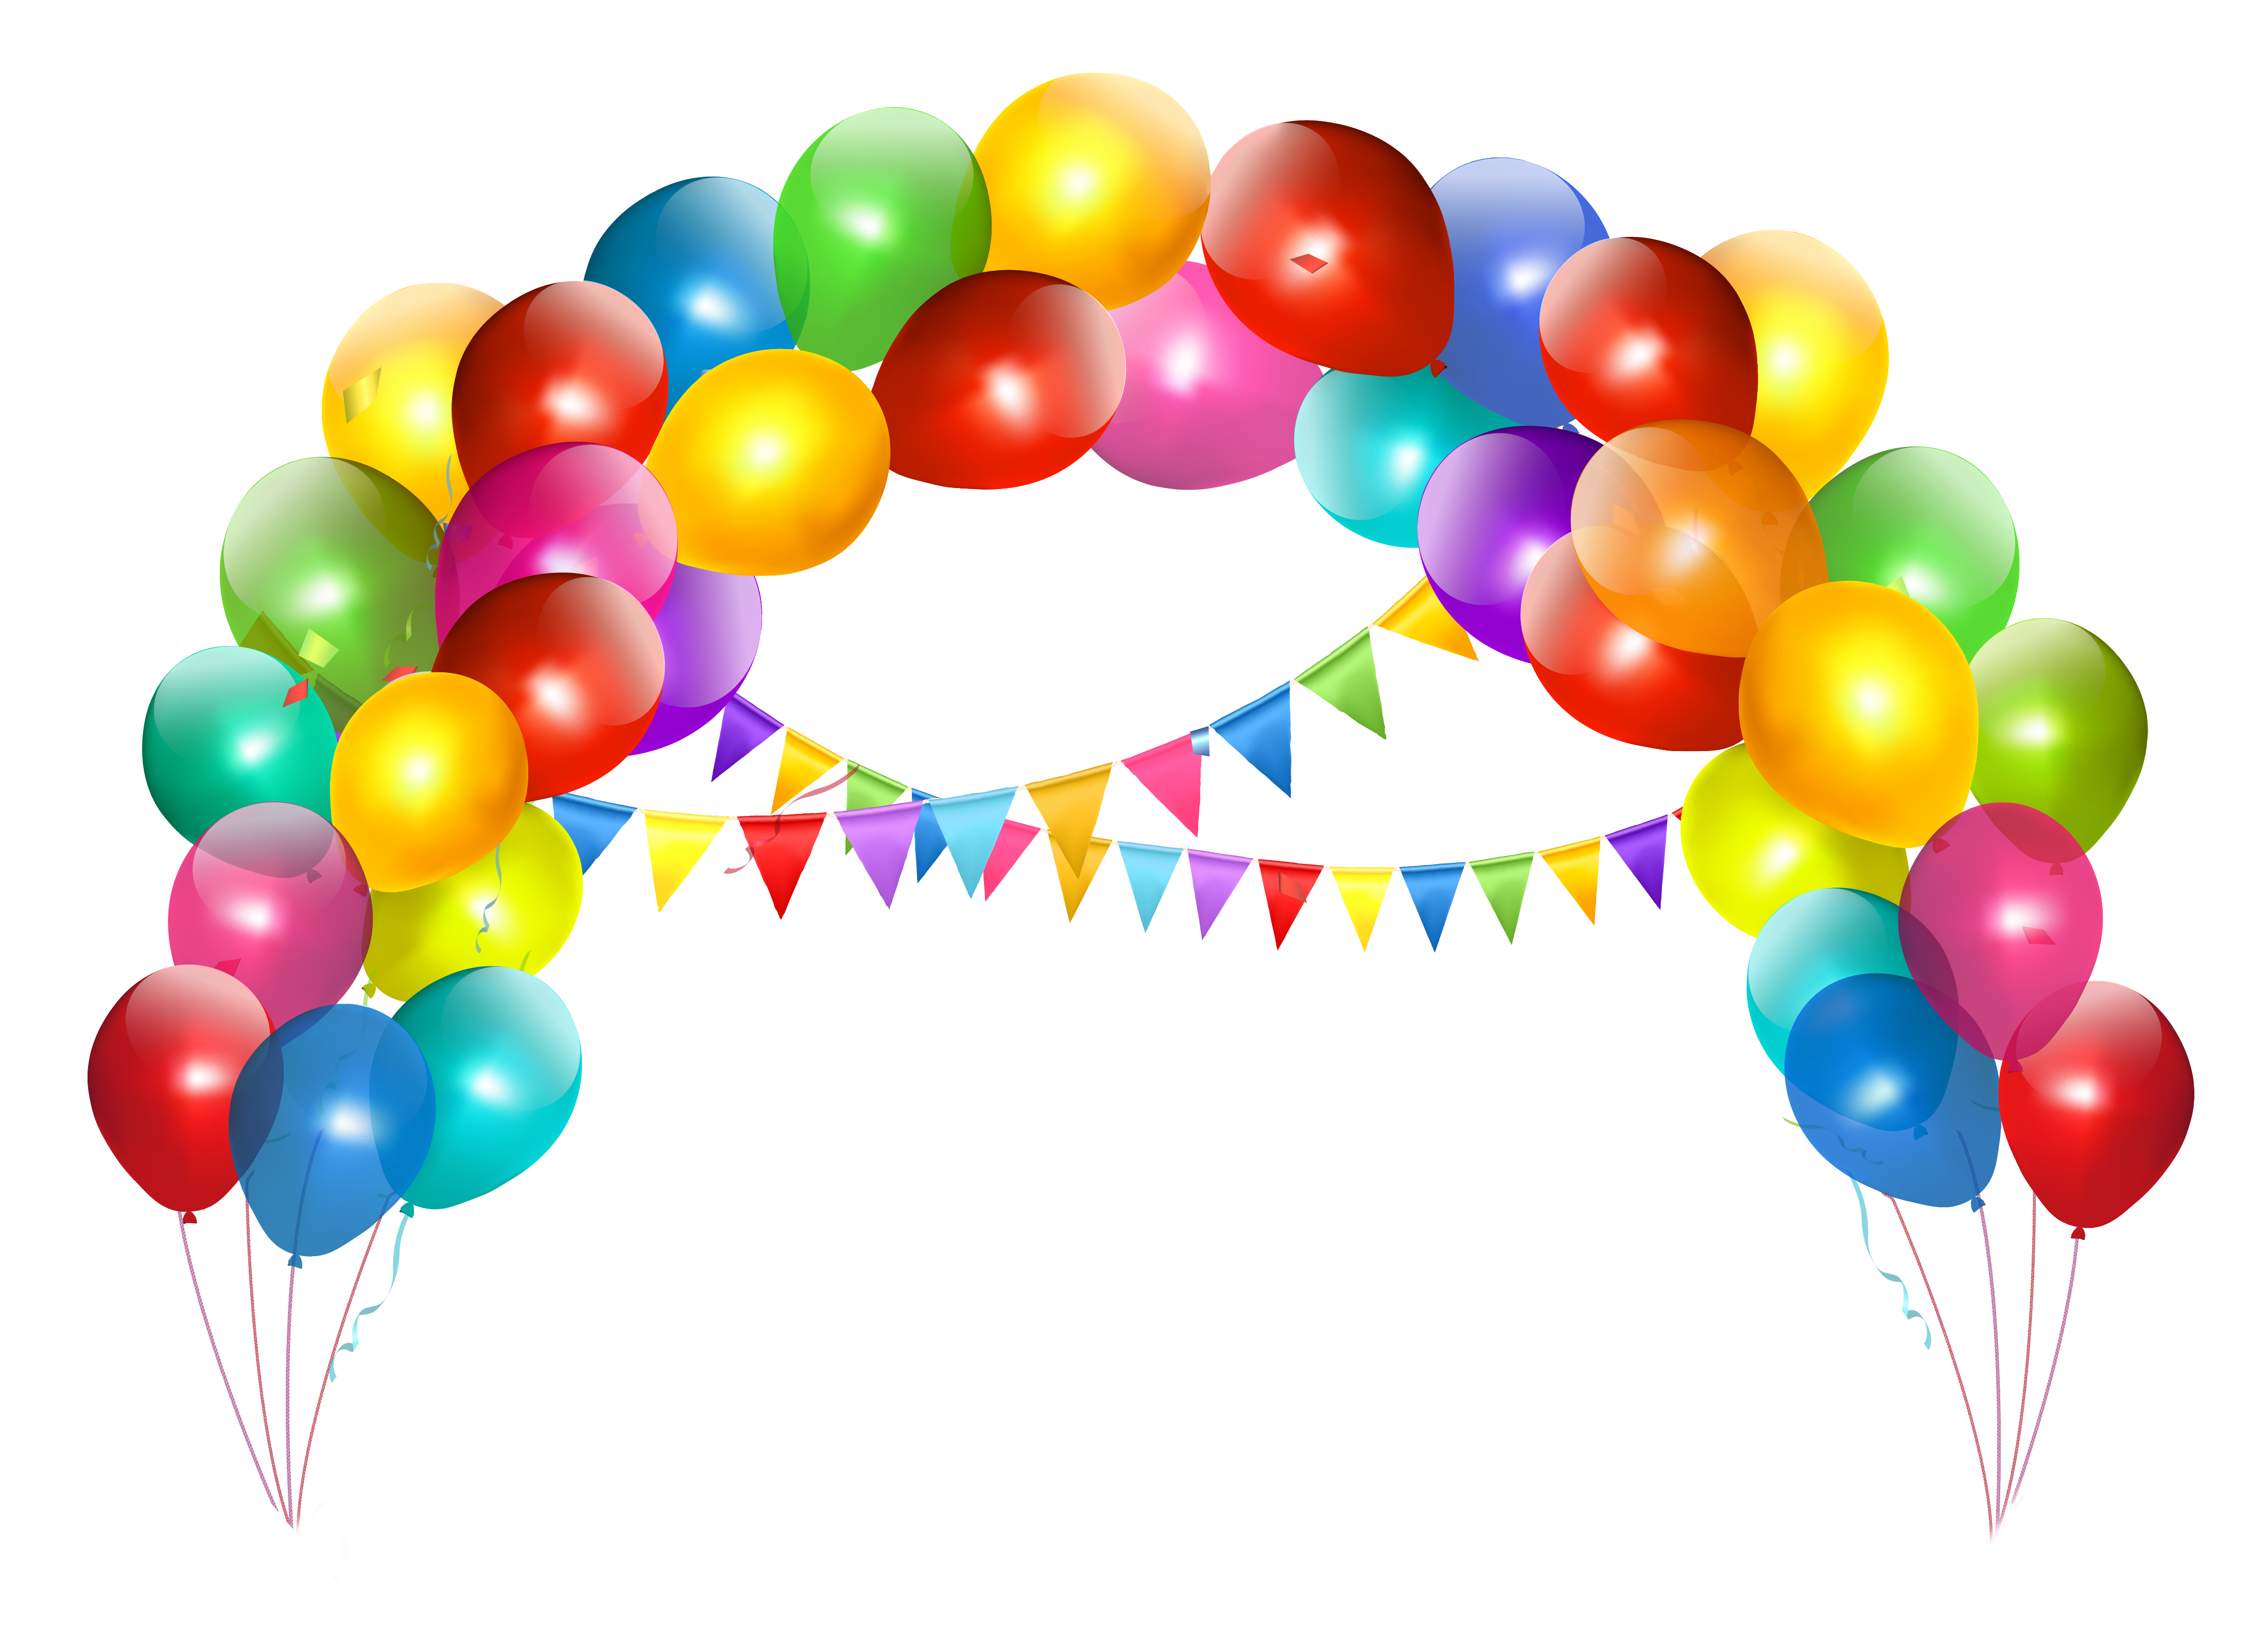 Free balloons clipart free Balloons Clip Art Transparent Background | Clipart Panda - Free ... free